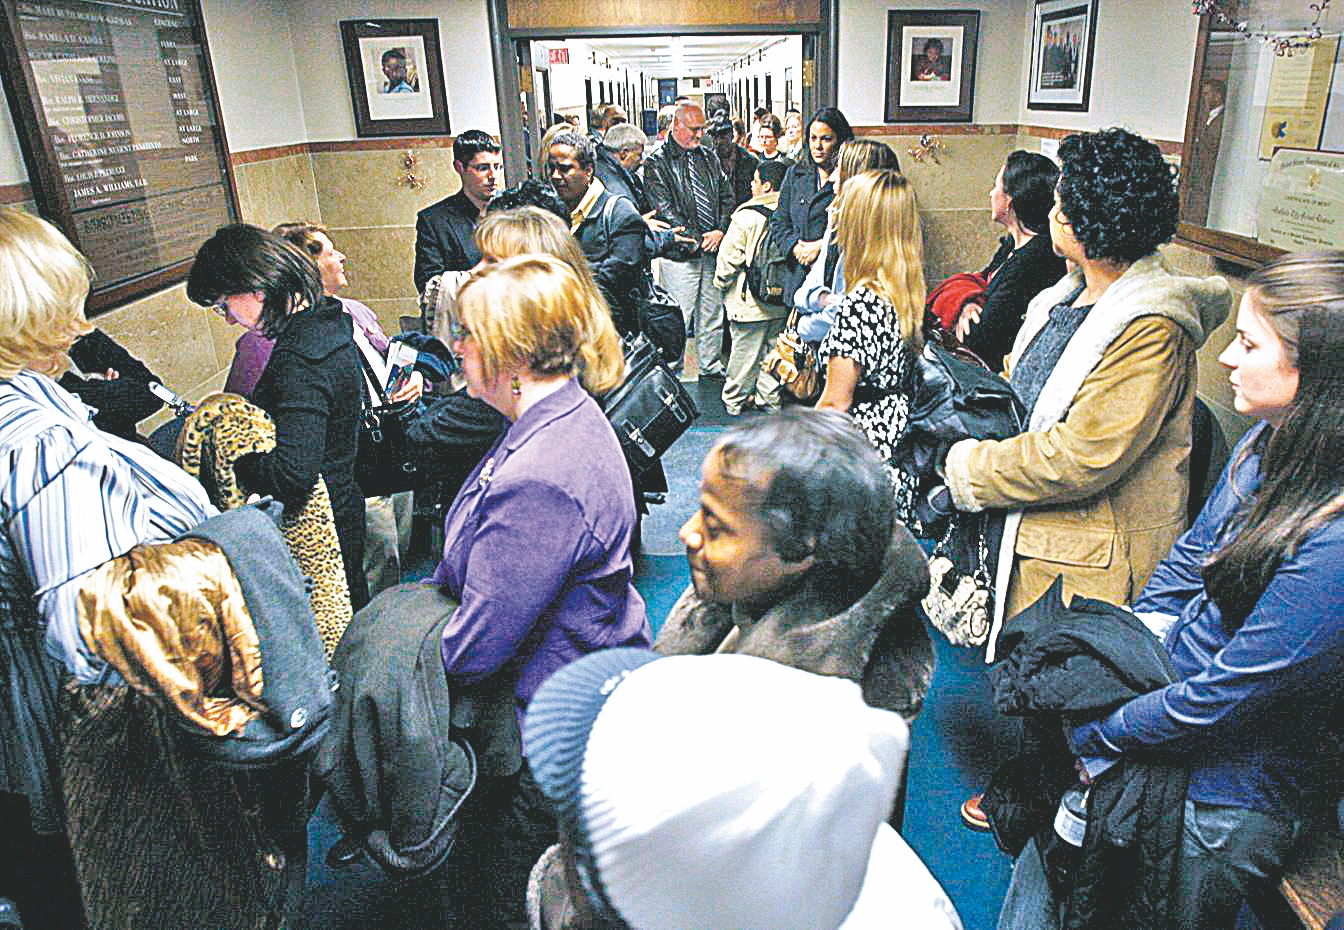 Large crowds trying to attend School Board meetings often have to wait in the hall. (buffalo News file photo)